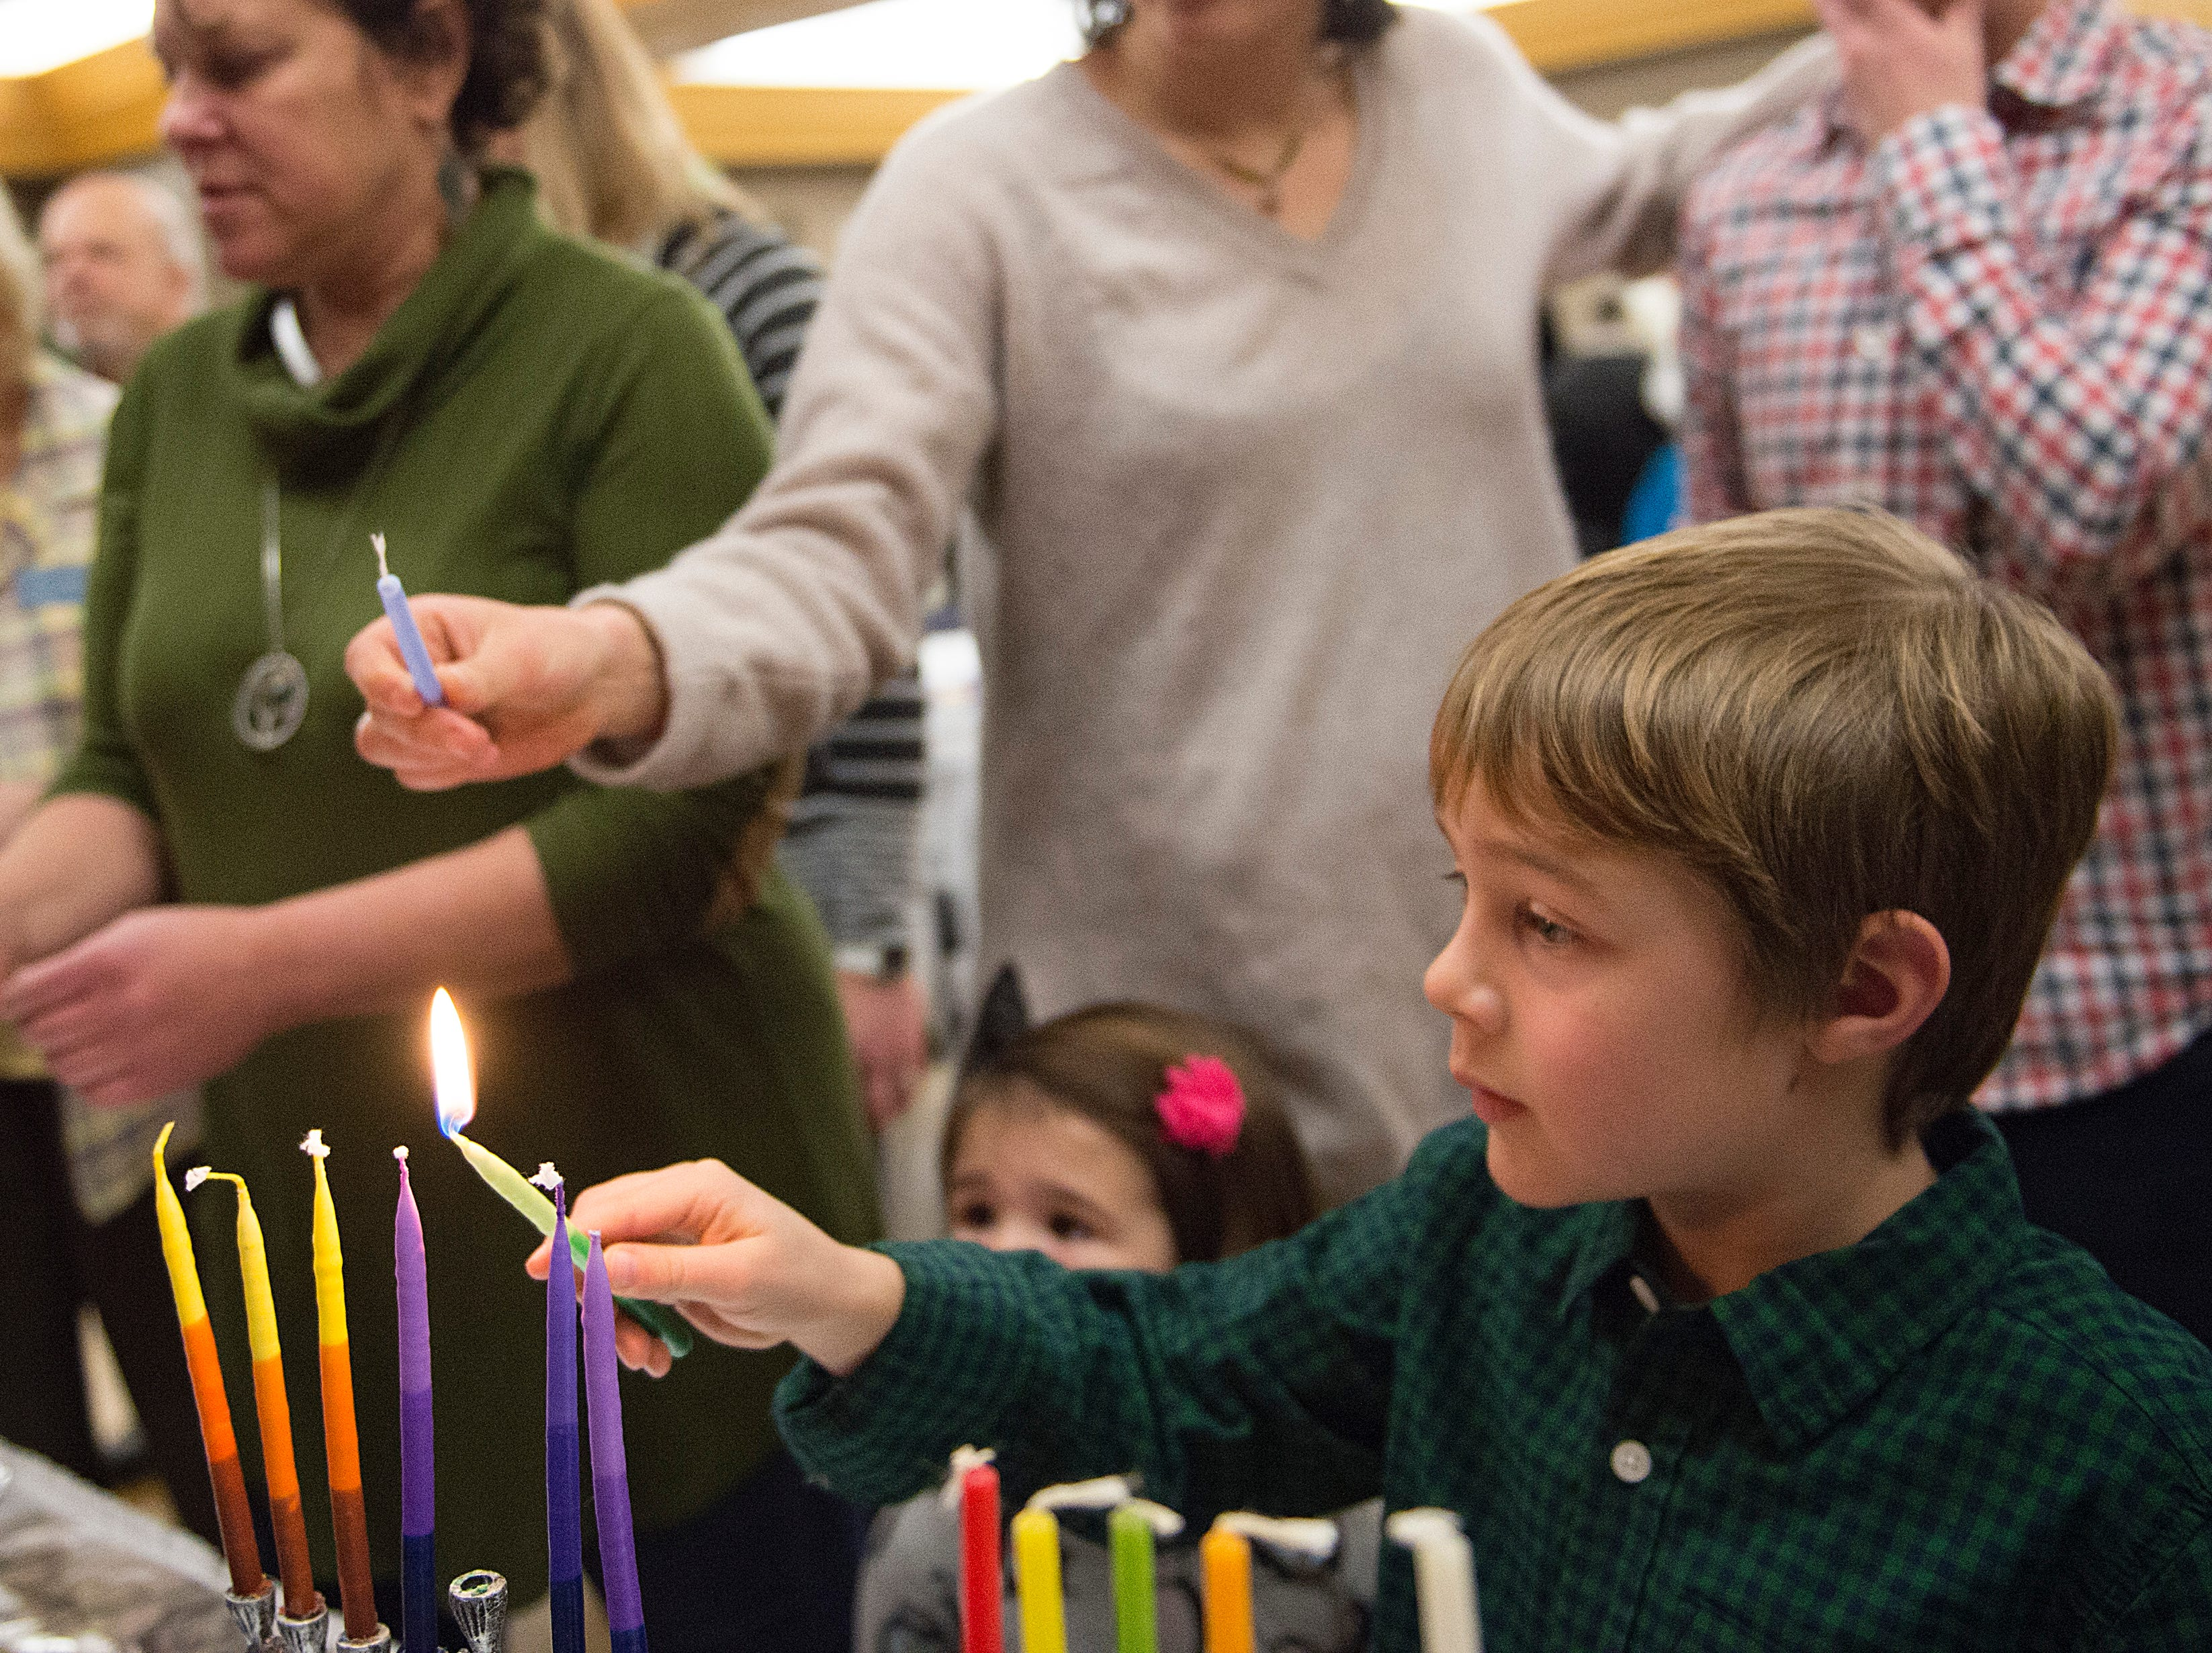 Odin Christiansen lights candles on the menorah on the sixth night of Hanukkah during a family gathering with Temple Or Hadash at the Fort Collins Senior Center on Friday, December 7, 2018.